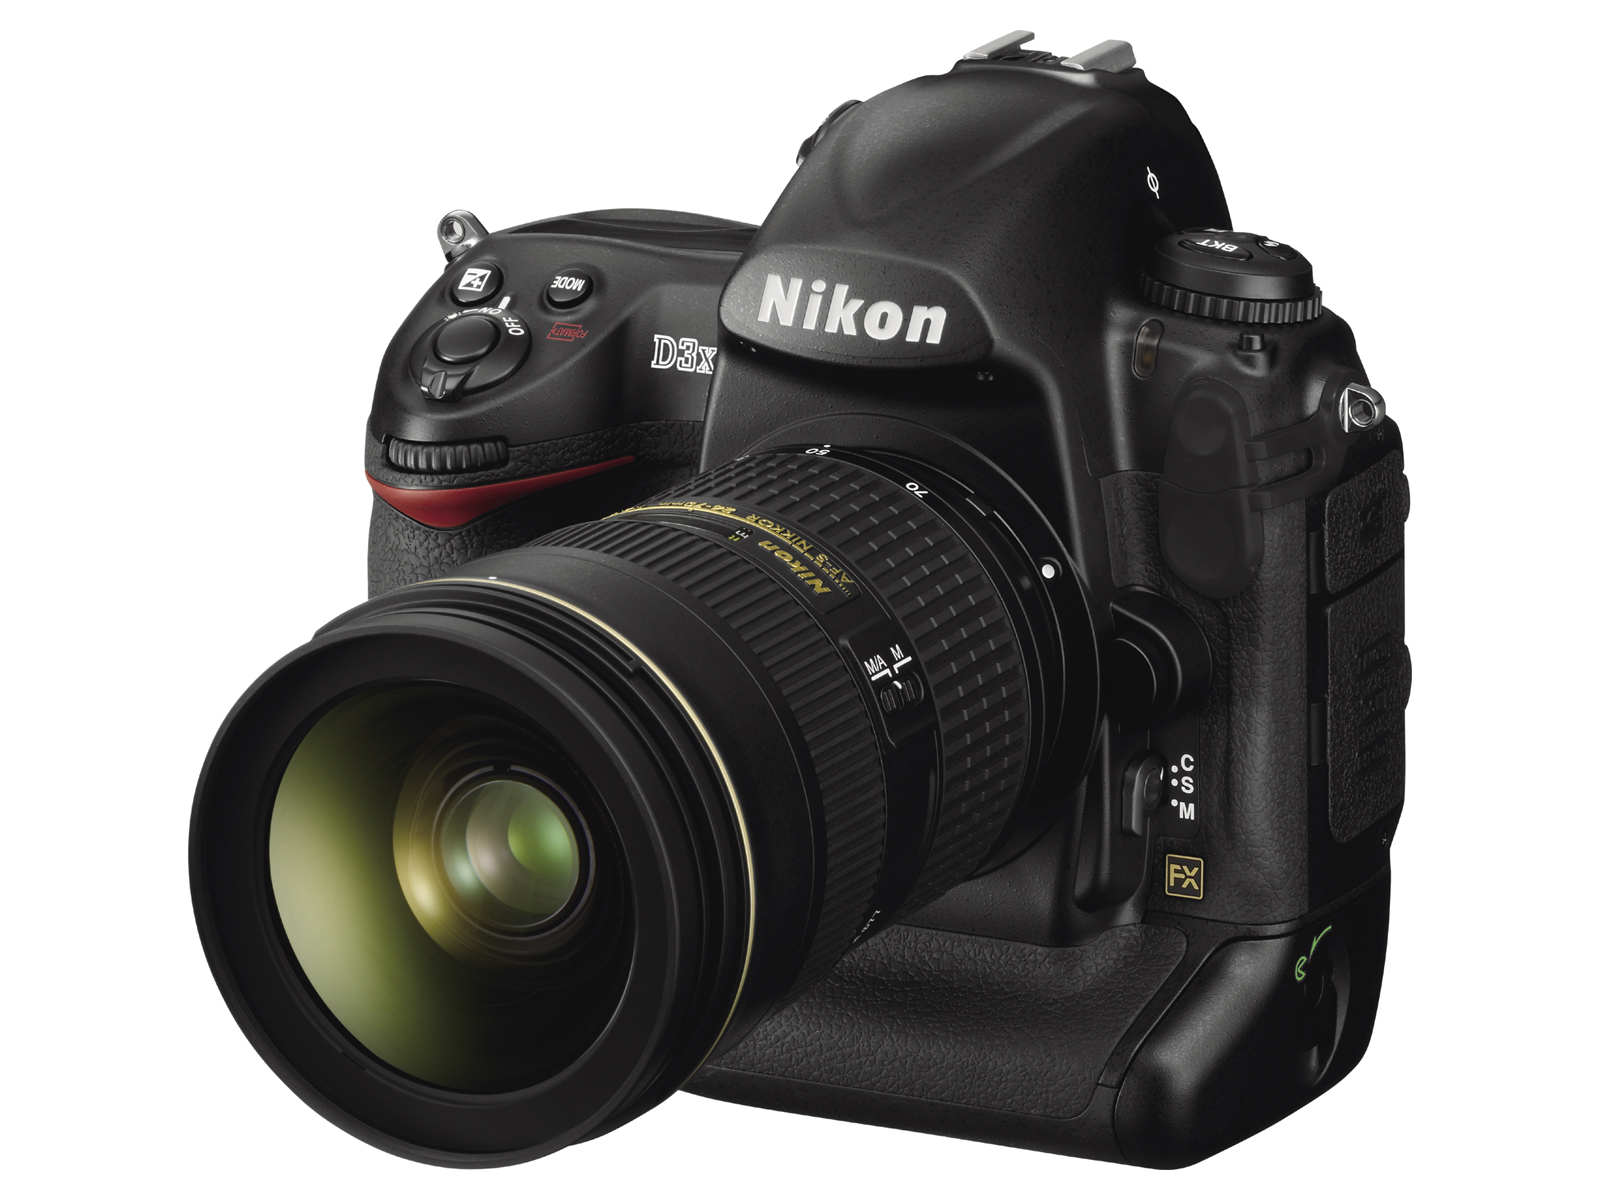 The Nikon D3X is identical to the D3.